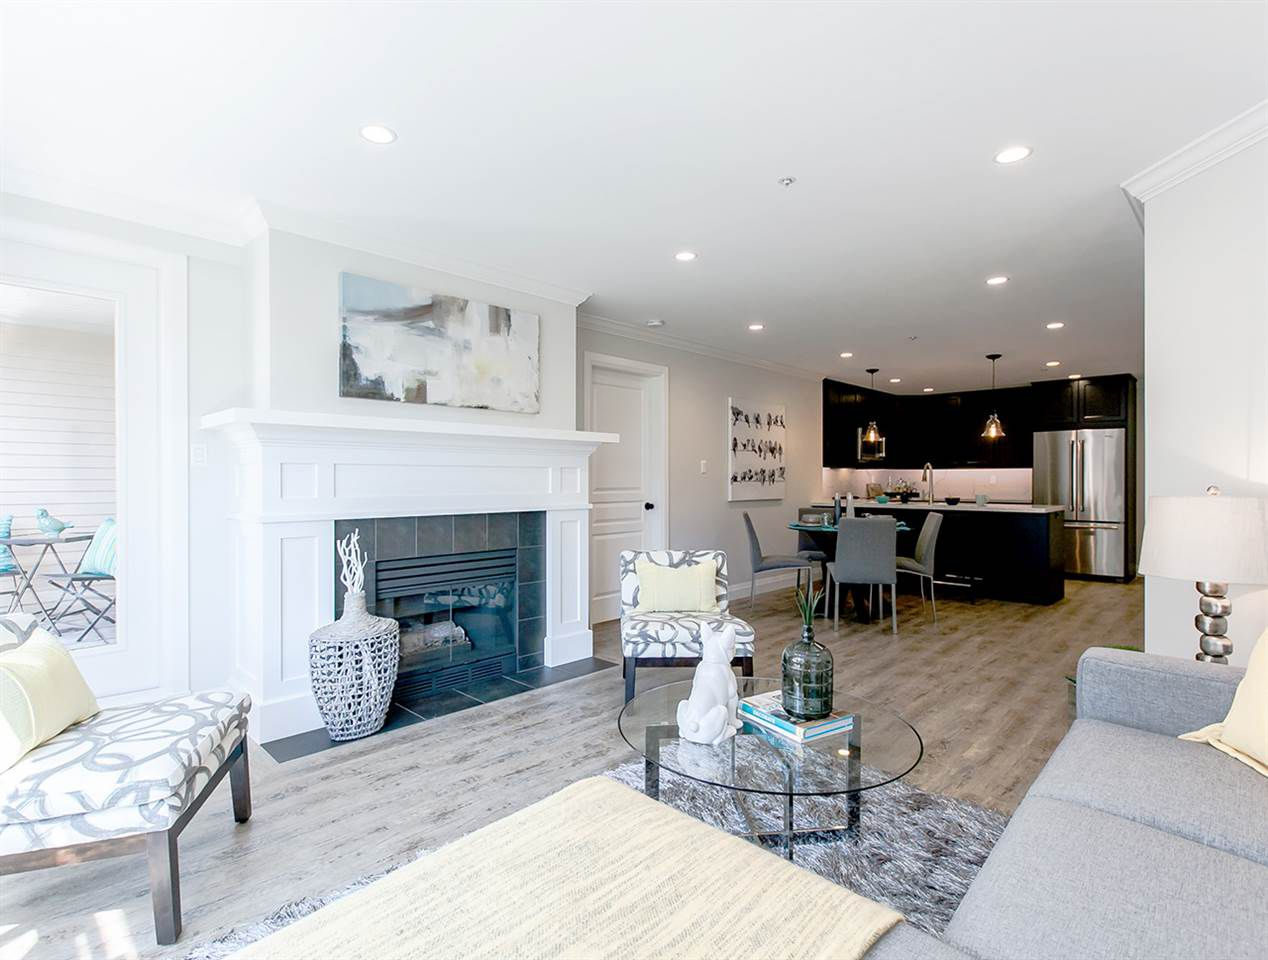 """Main Photo: 103 1140 STRATHAVEN Drive in North Vancouver: Northlands Condo for sale in """"Strathaven"""" : MLS®# R2064692"""